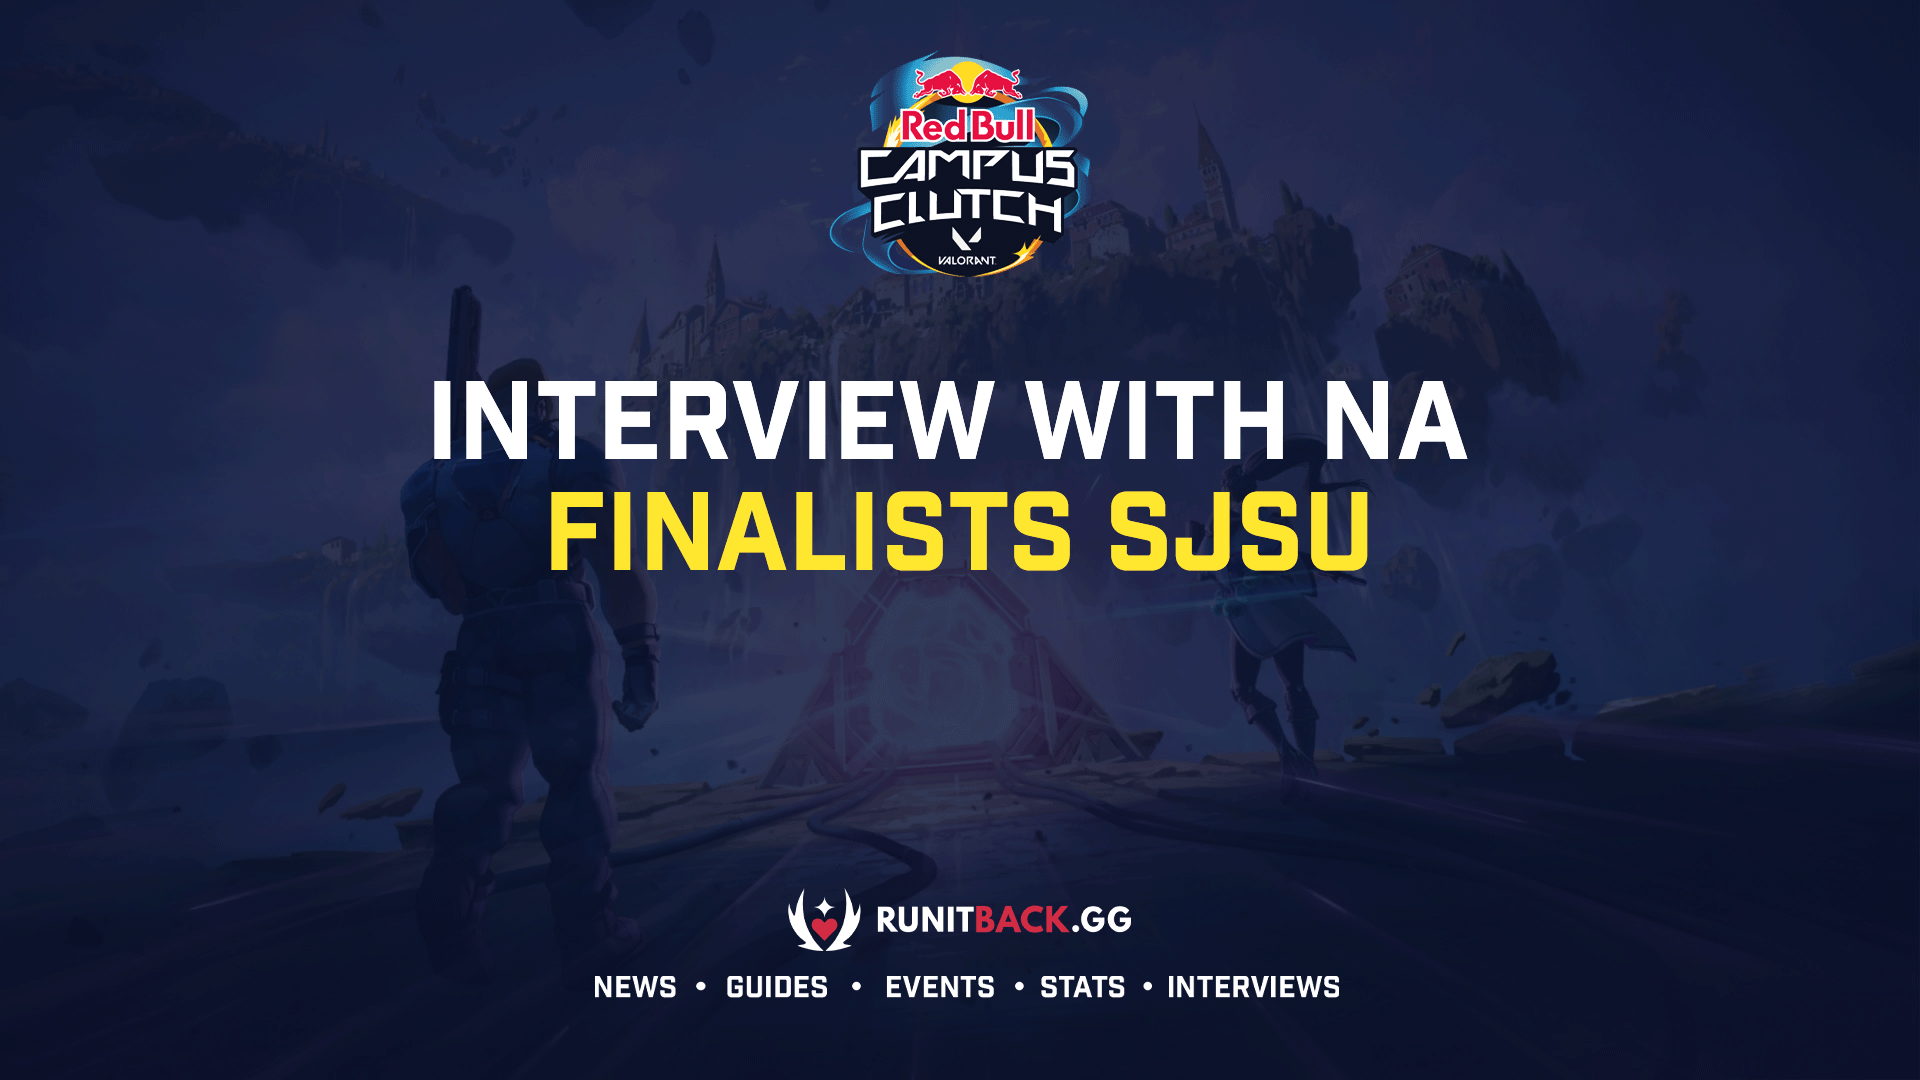 Red Bull Campus Clutch – Interview with NA Finalists SJSU